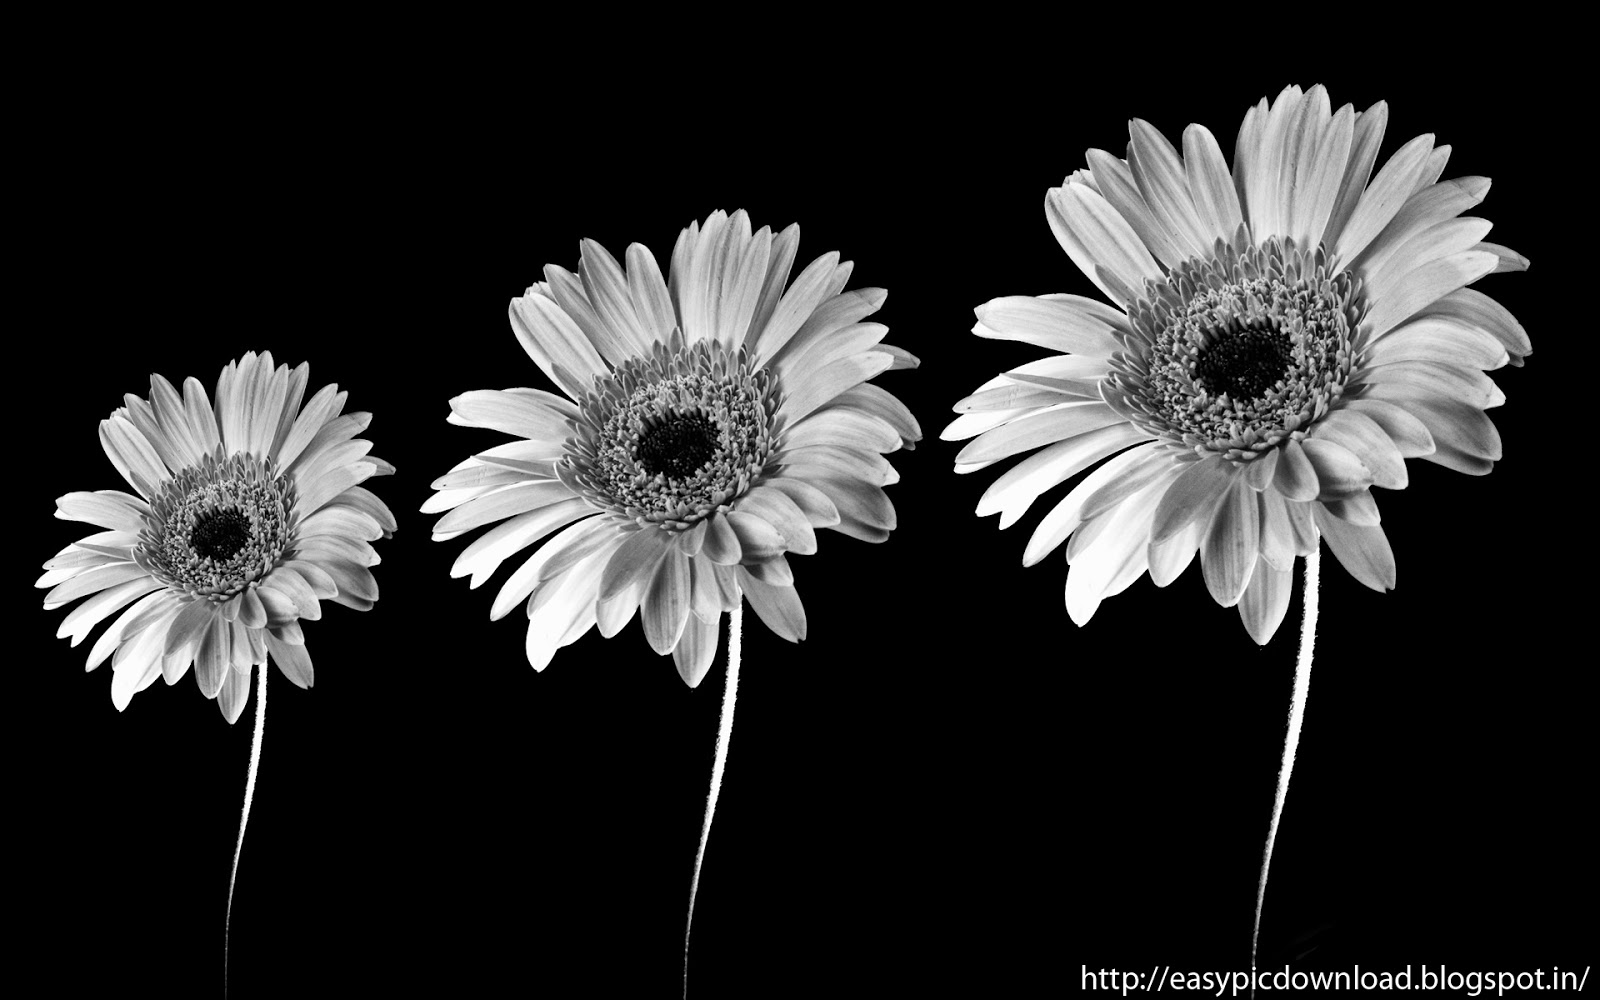 Black and white sun flower wallpaper easy pic download black and white sun flower wallpaper mightylinksfo